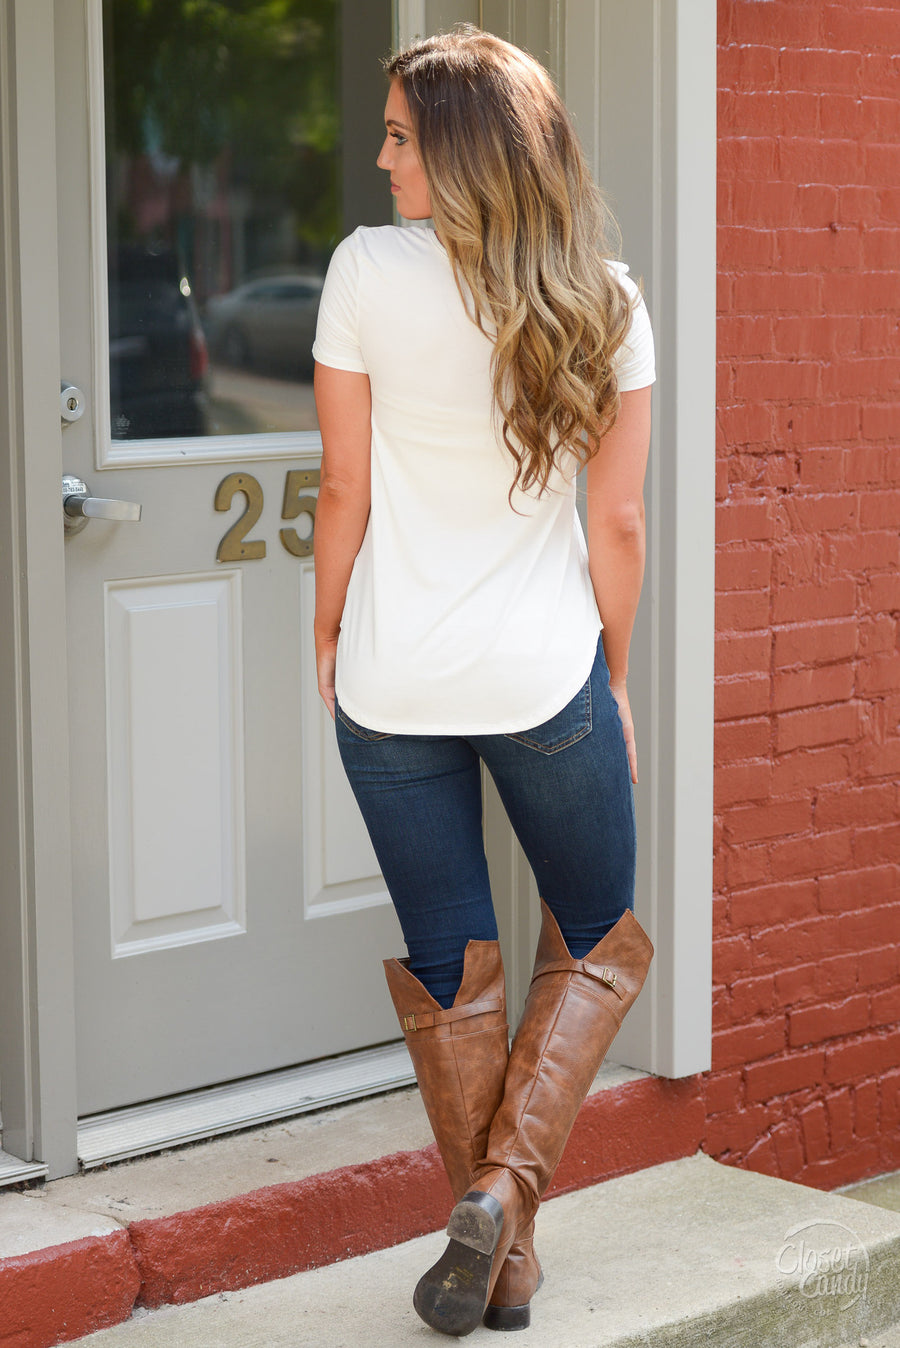 Blaze the Way Top - Ivory - Trendy and fashionable Top by Closet Candy Boutique